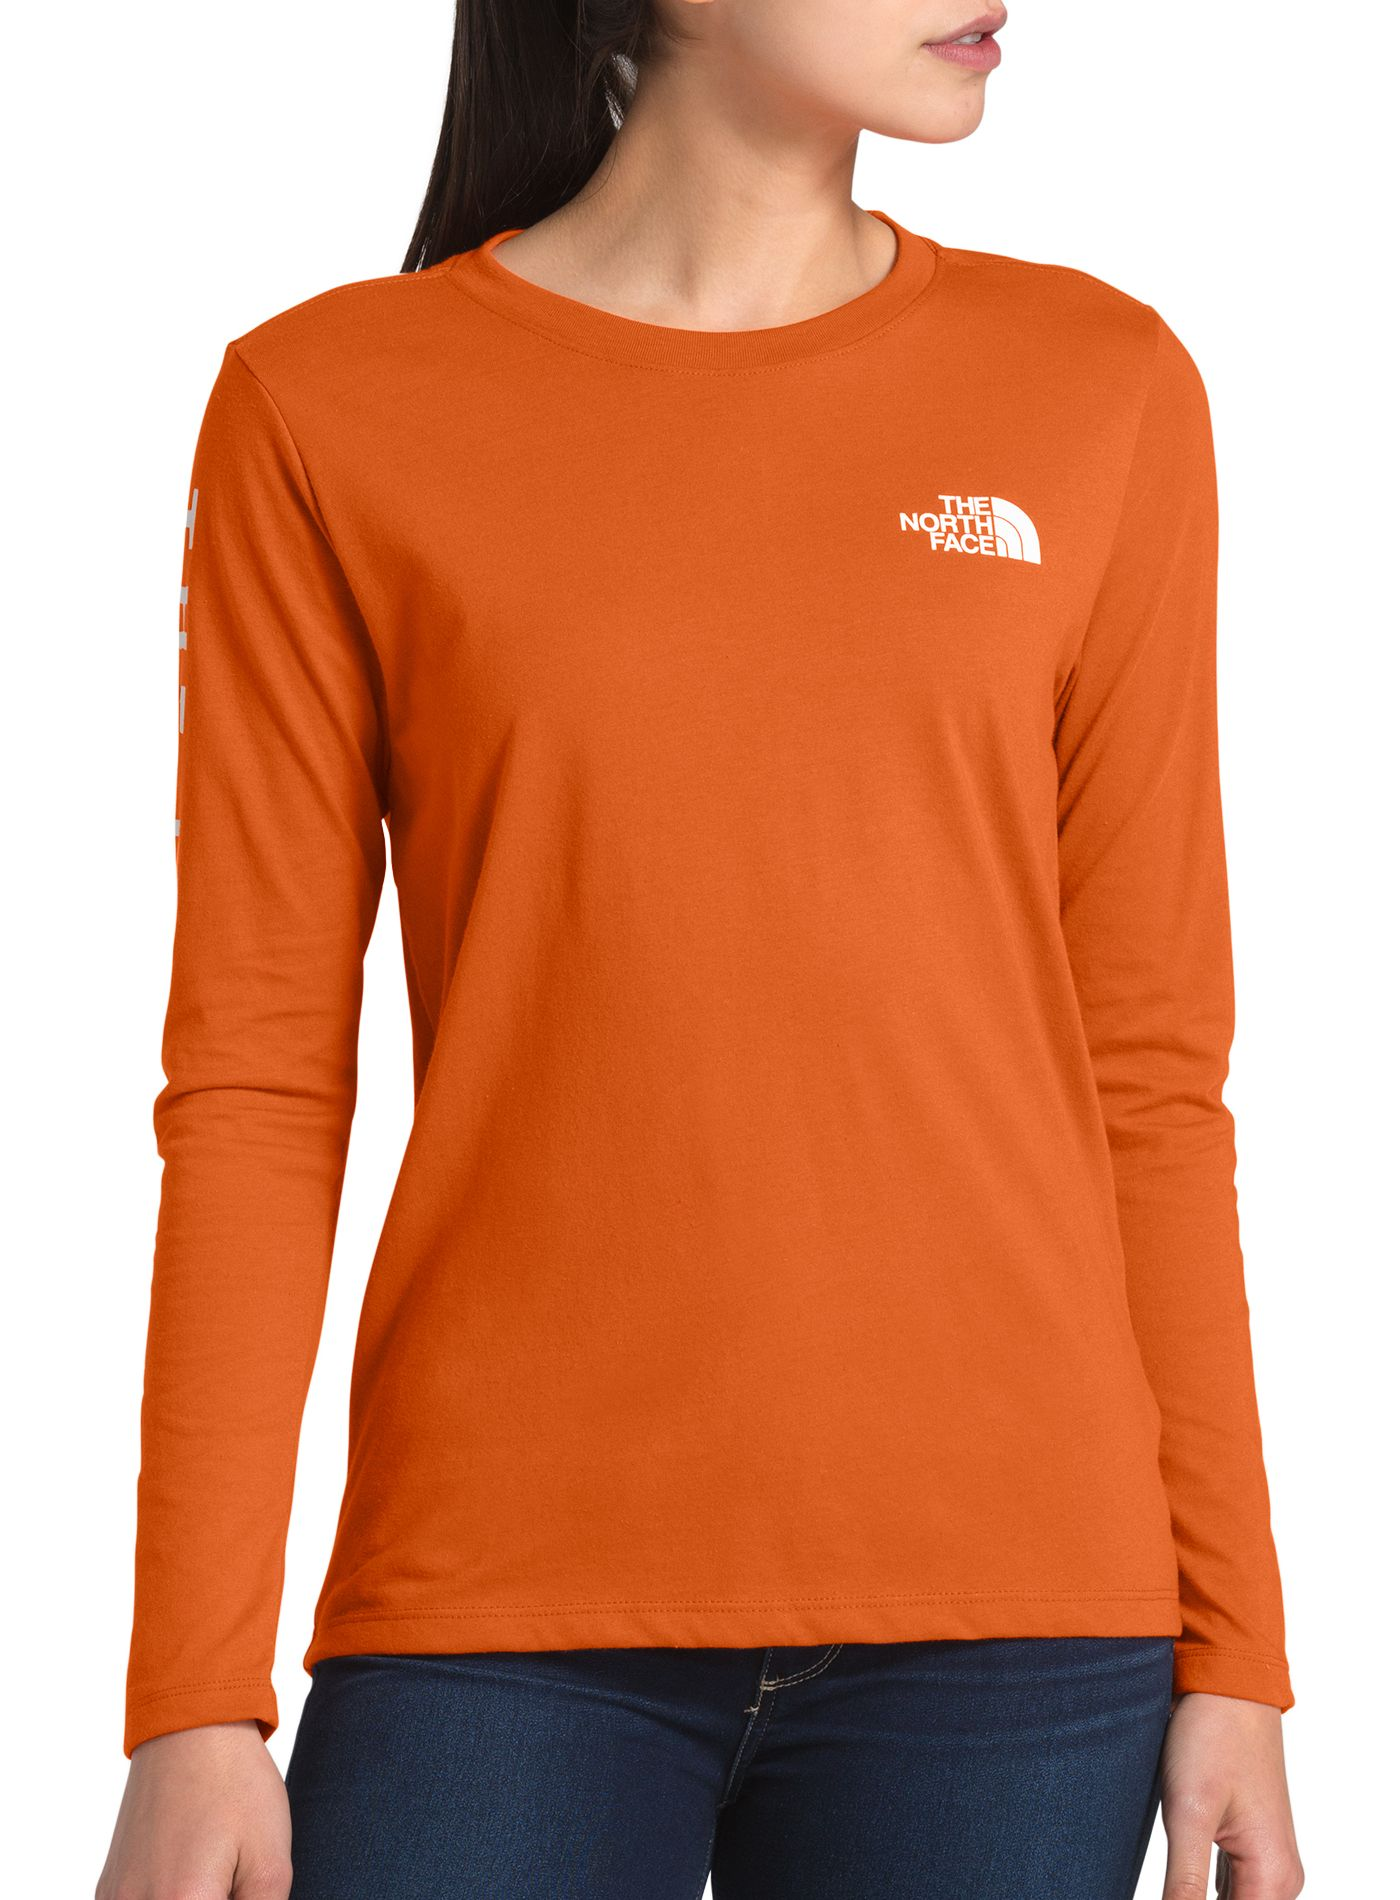 The North Face Women's Bottle Source Long Sleeve T-Shirt